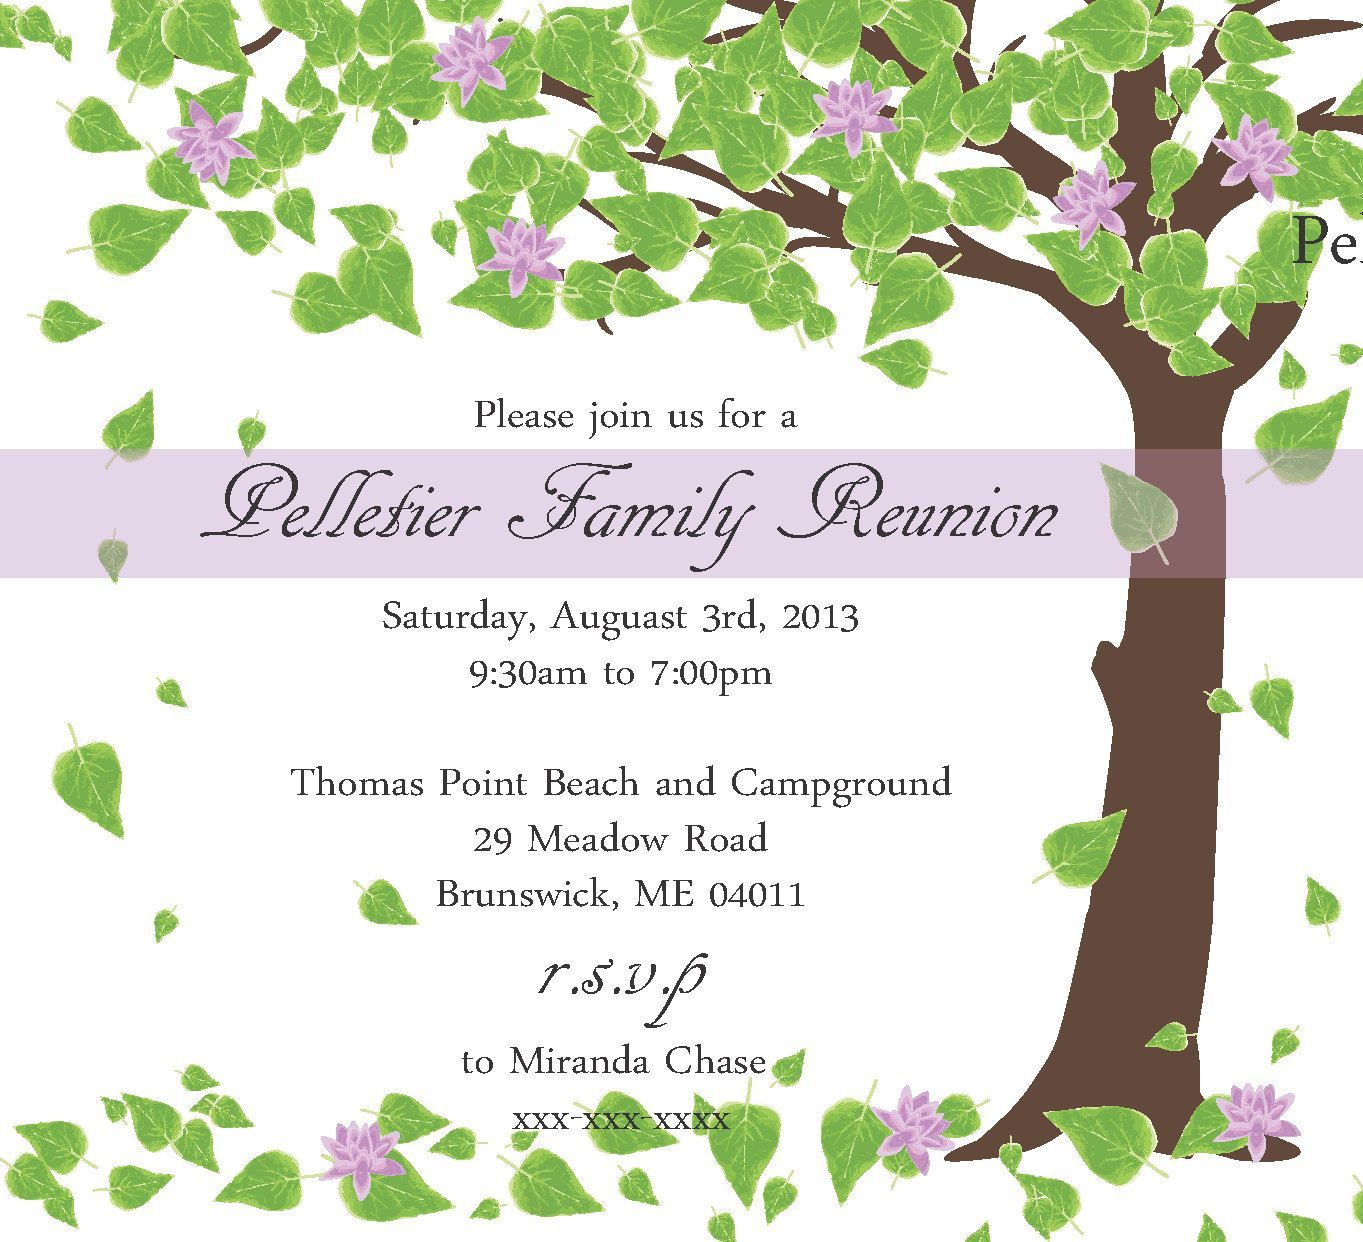 000 Impressive Family Reunion Invitation Card Template High Resolution Full